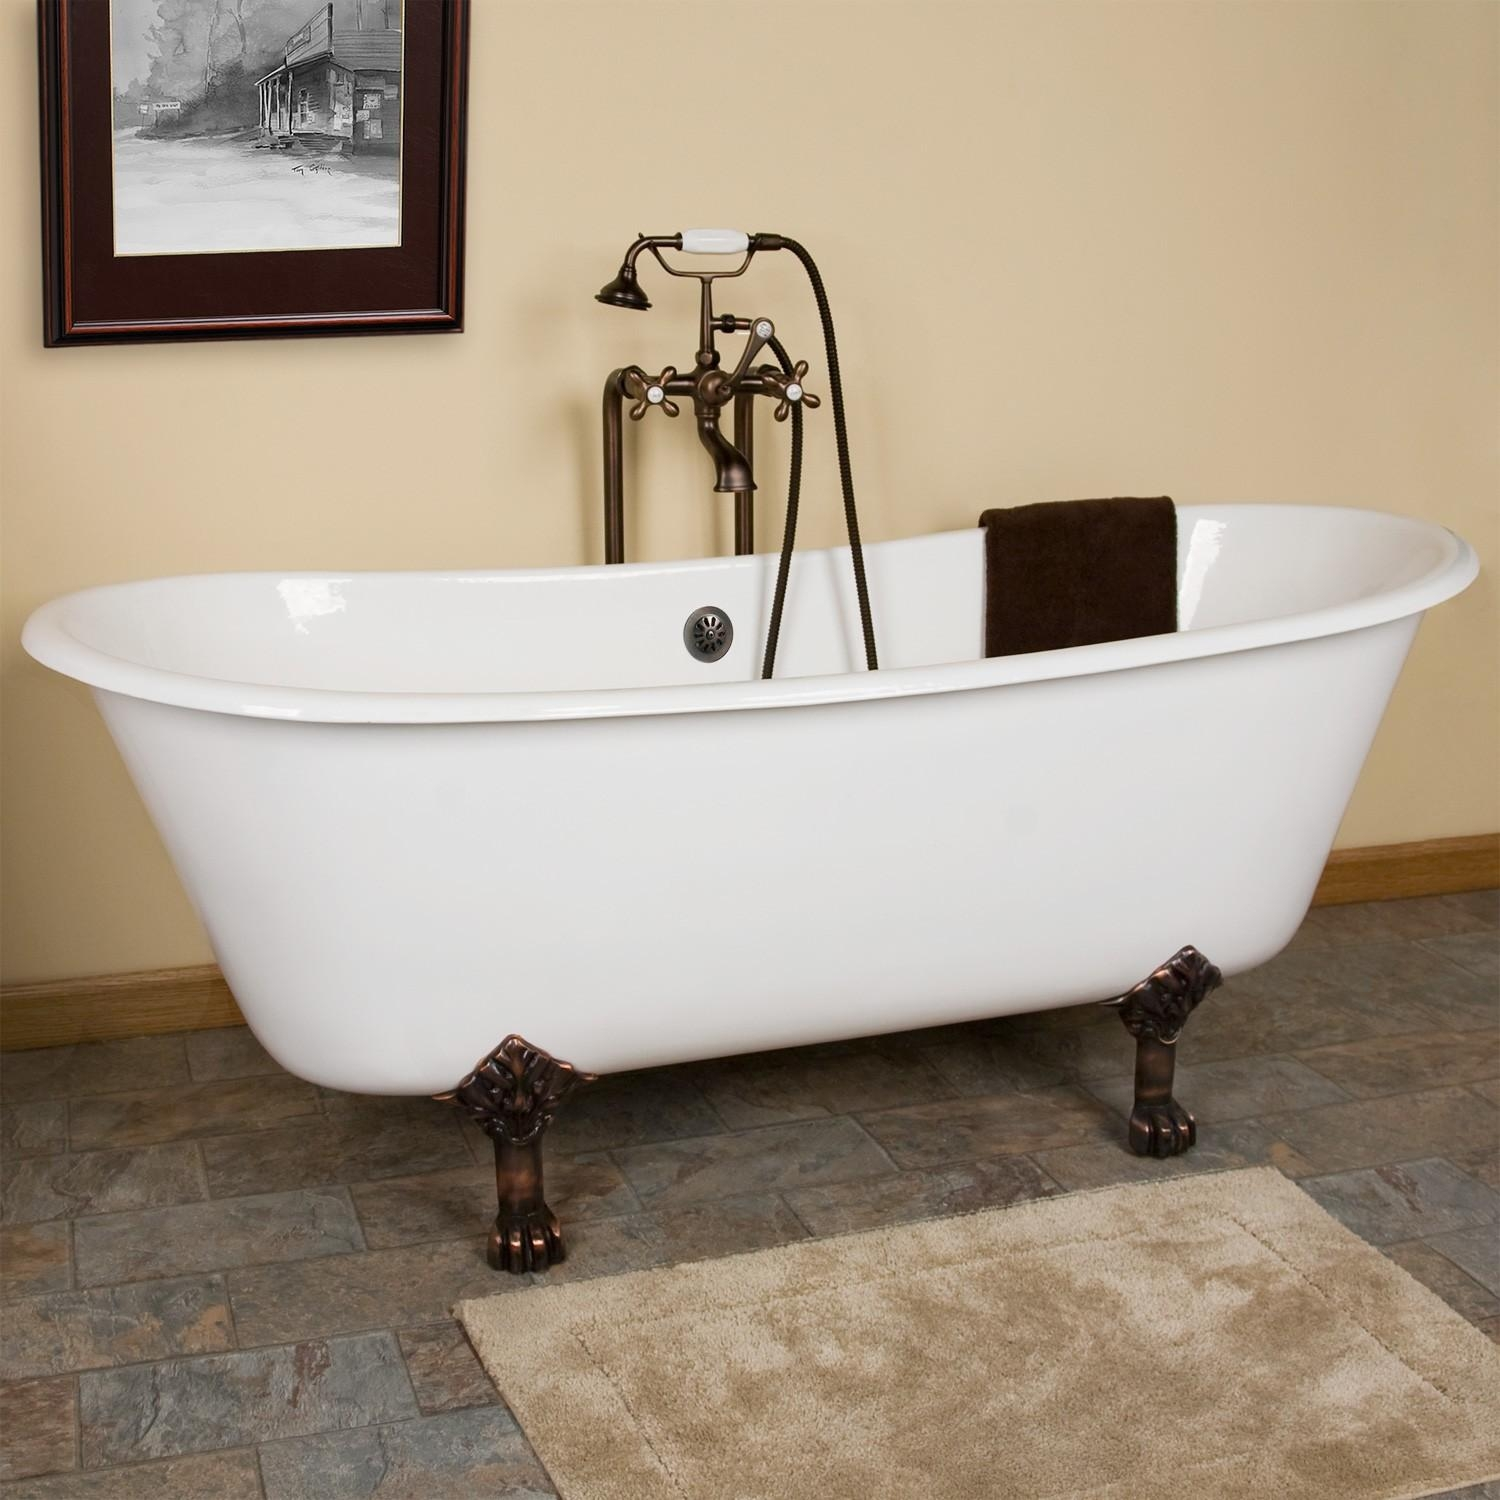 Cast Iron Clawfoot Tub Ideas : How To Paint A Cast Iron Clawfoot Throughout Clawfoot Tub Sofas (View 20 of 20)